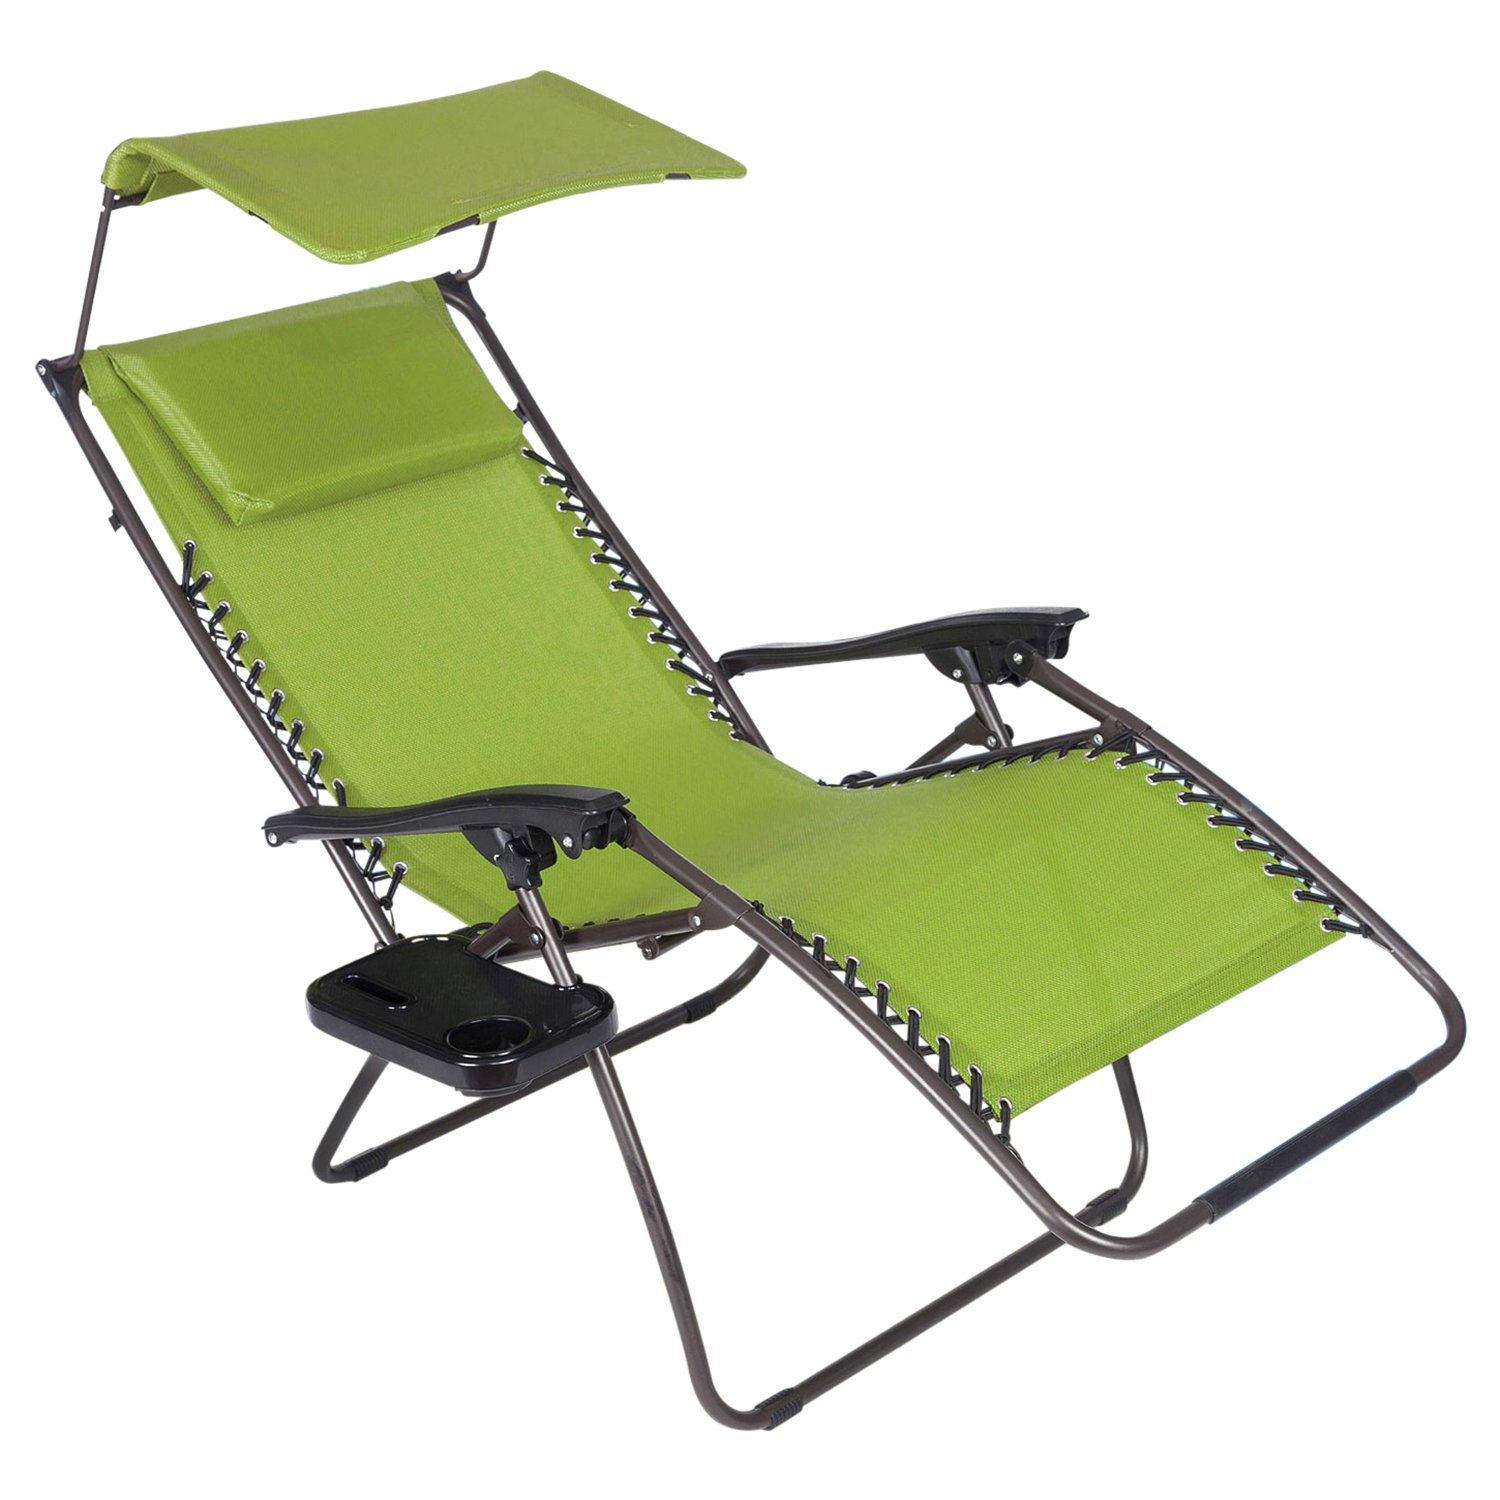 Just Relax Oversized Zero Gravity Chair with Pillow, Canopy, and Clip-On Table (Green)